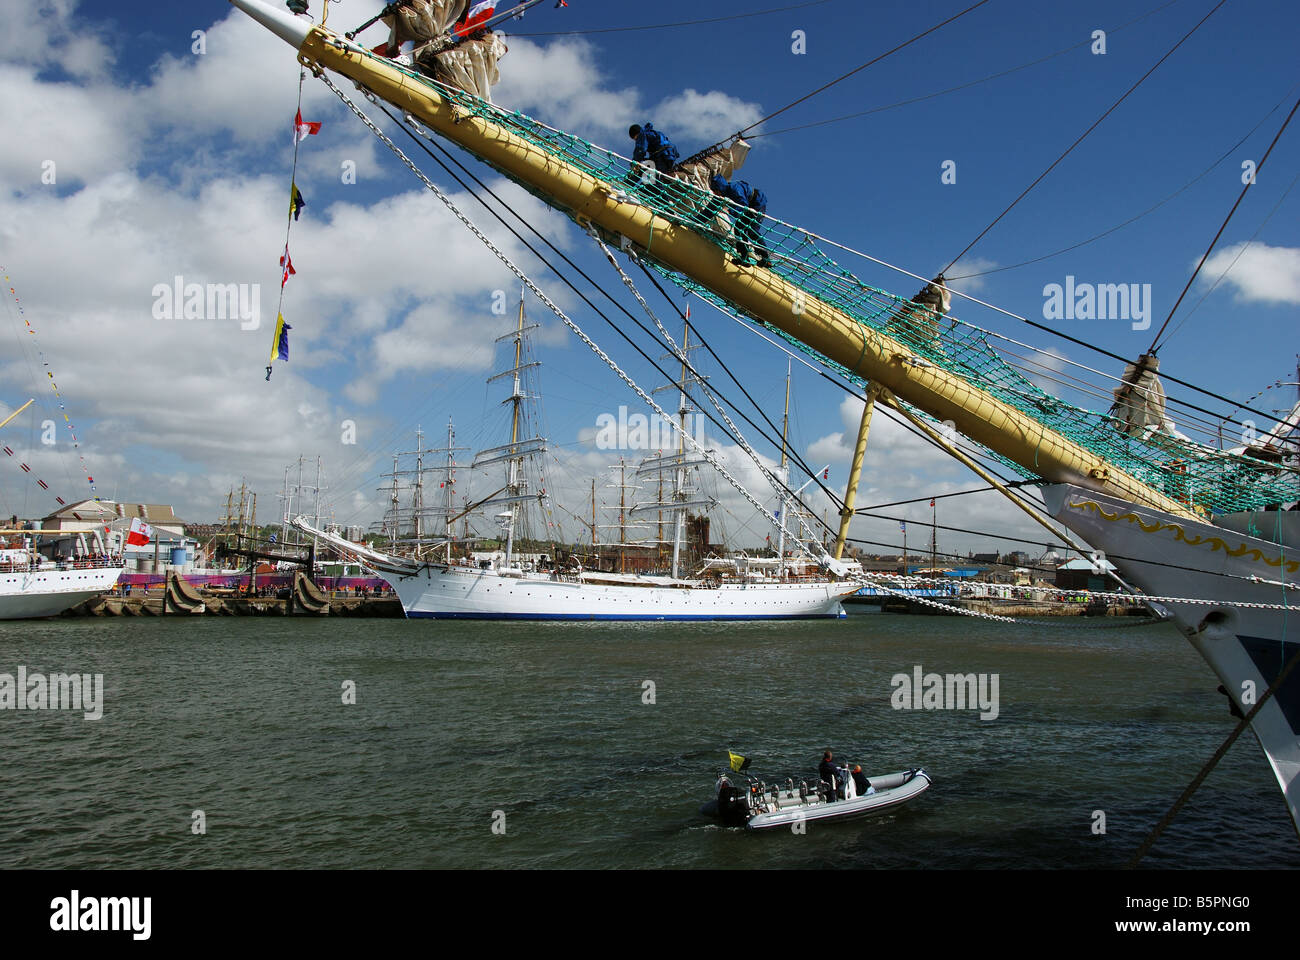 Tall Ships moored at Liverpool prior to the Tall Ships Race - Stock Image